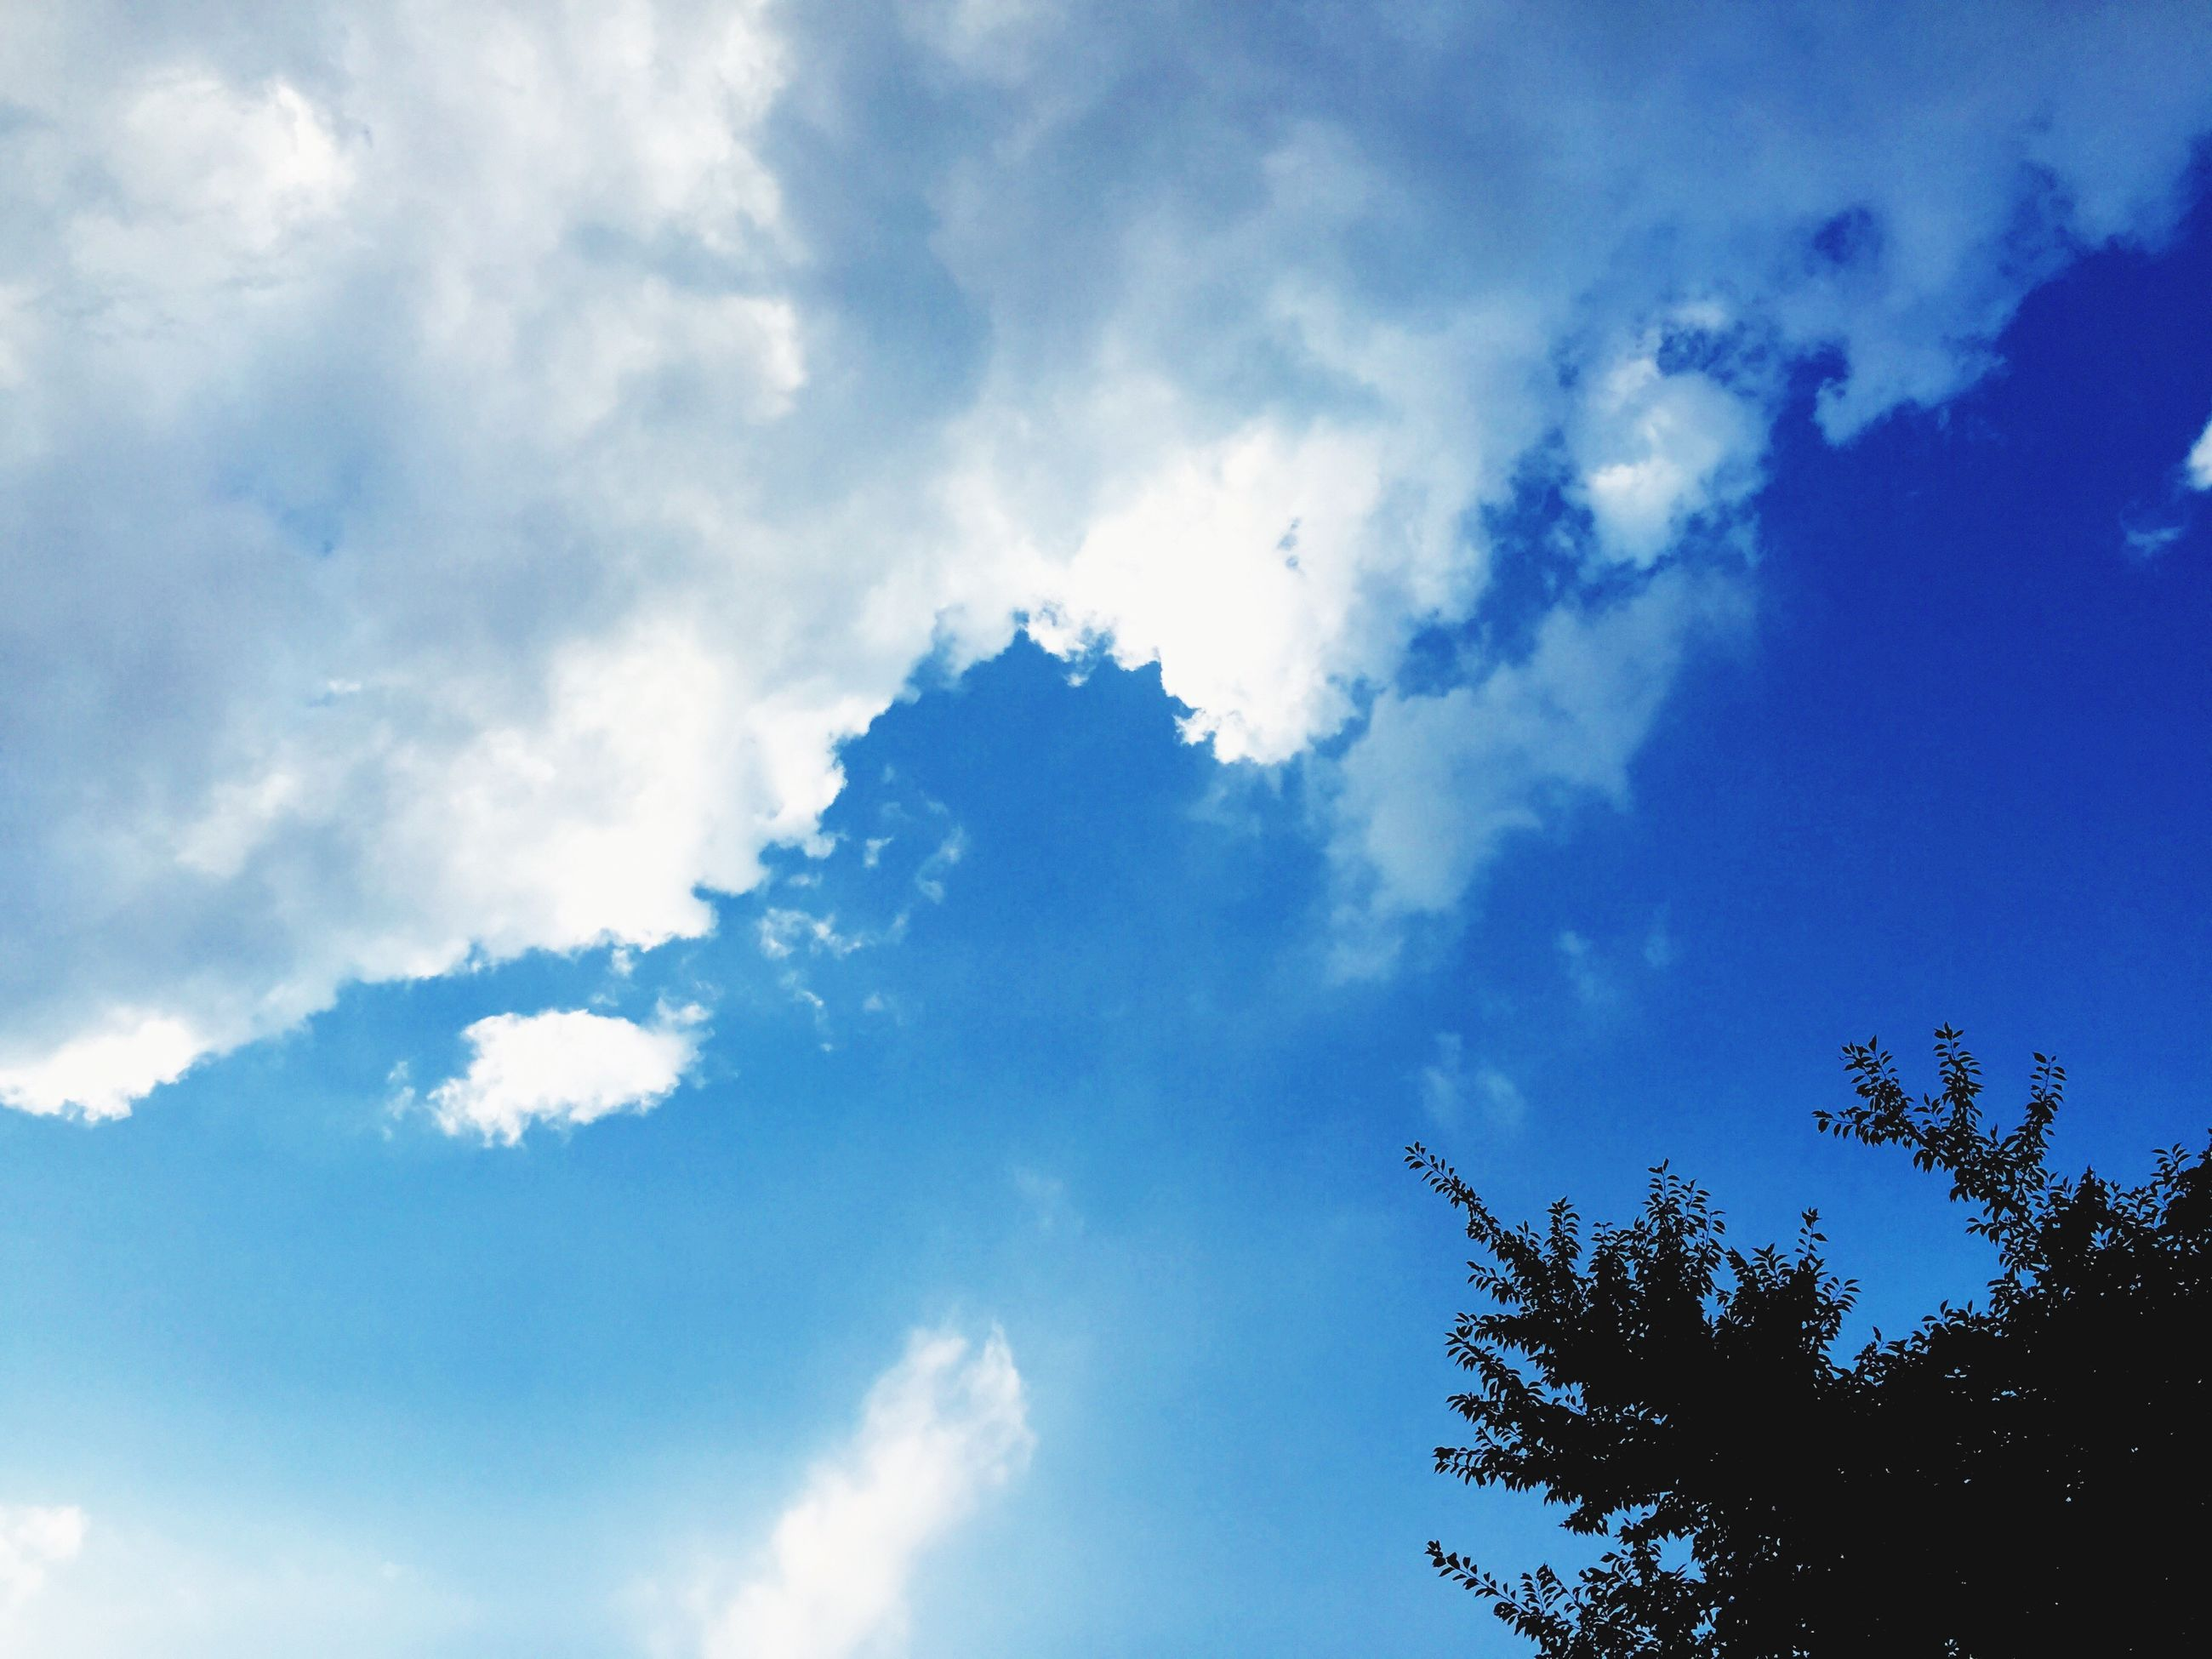 low angle view, sky, blue, cloud - sky, tree, beauty in nature, nature, tranquility, cloud, cloudy, scenics, high section, outdoors, growth, day, no people, tranquil scene, treetop, idyllic, backgrounds